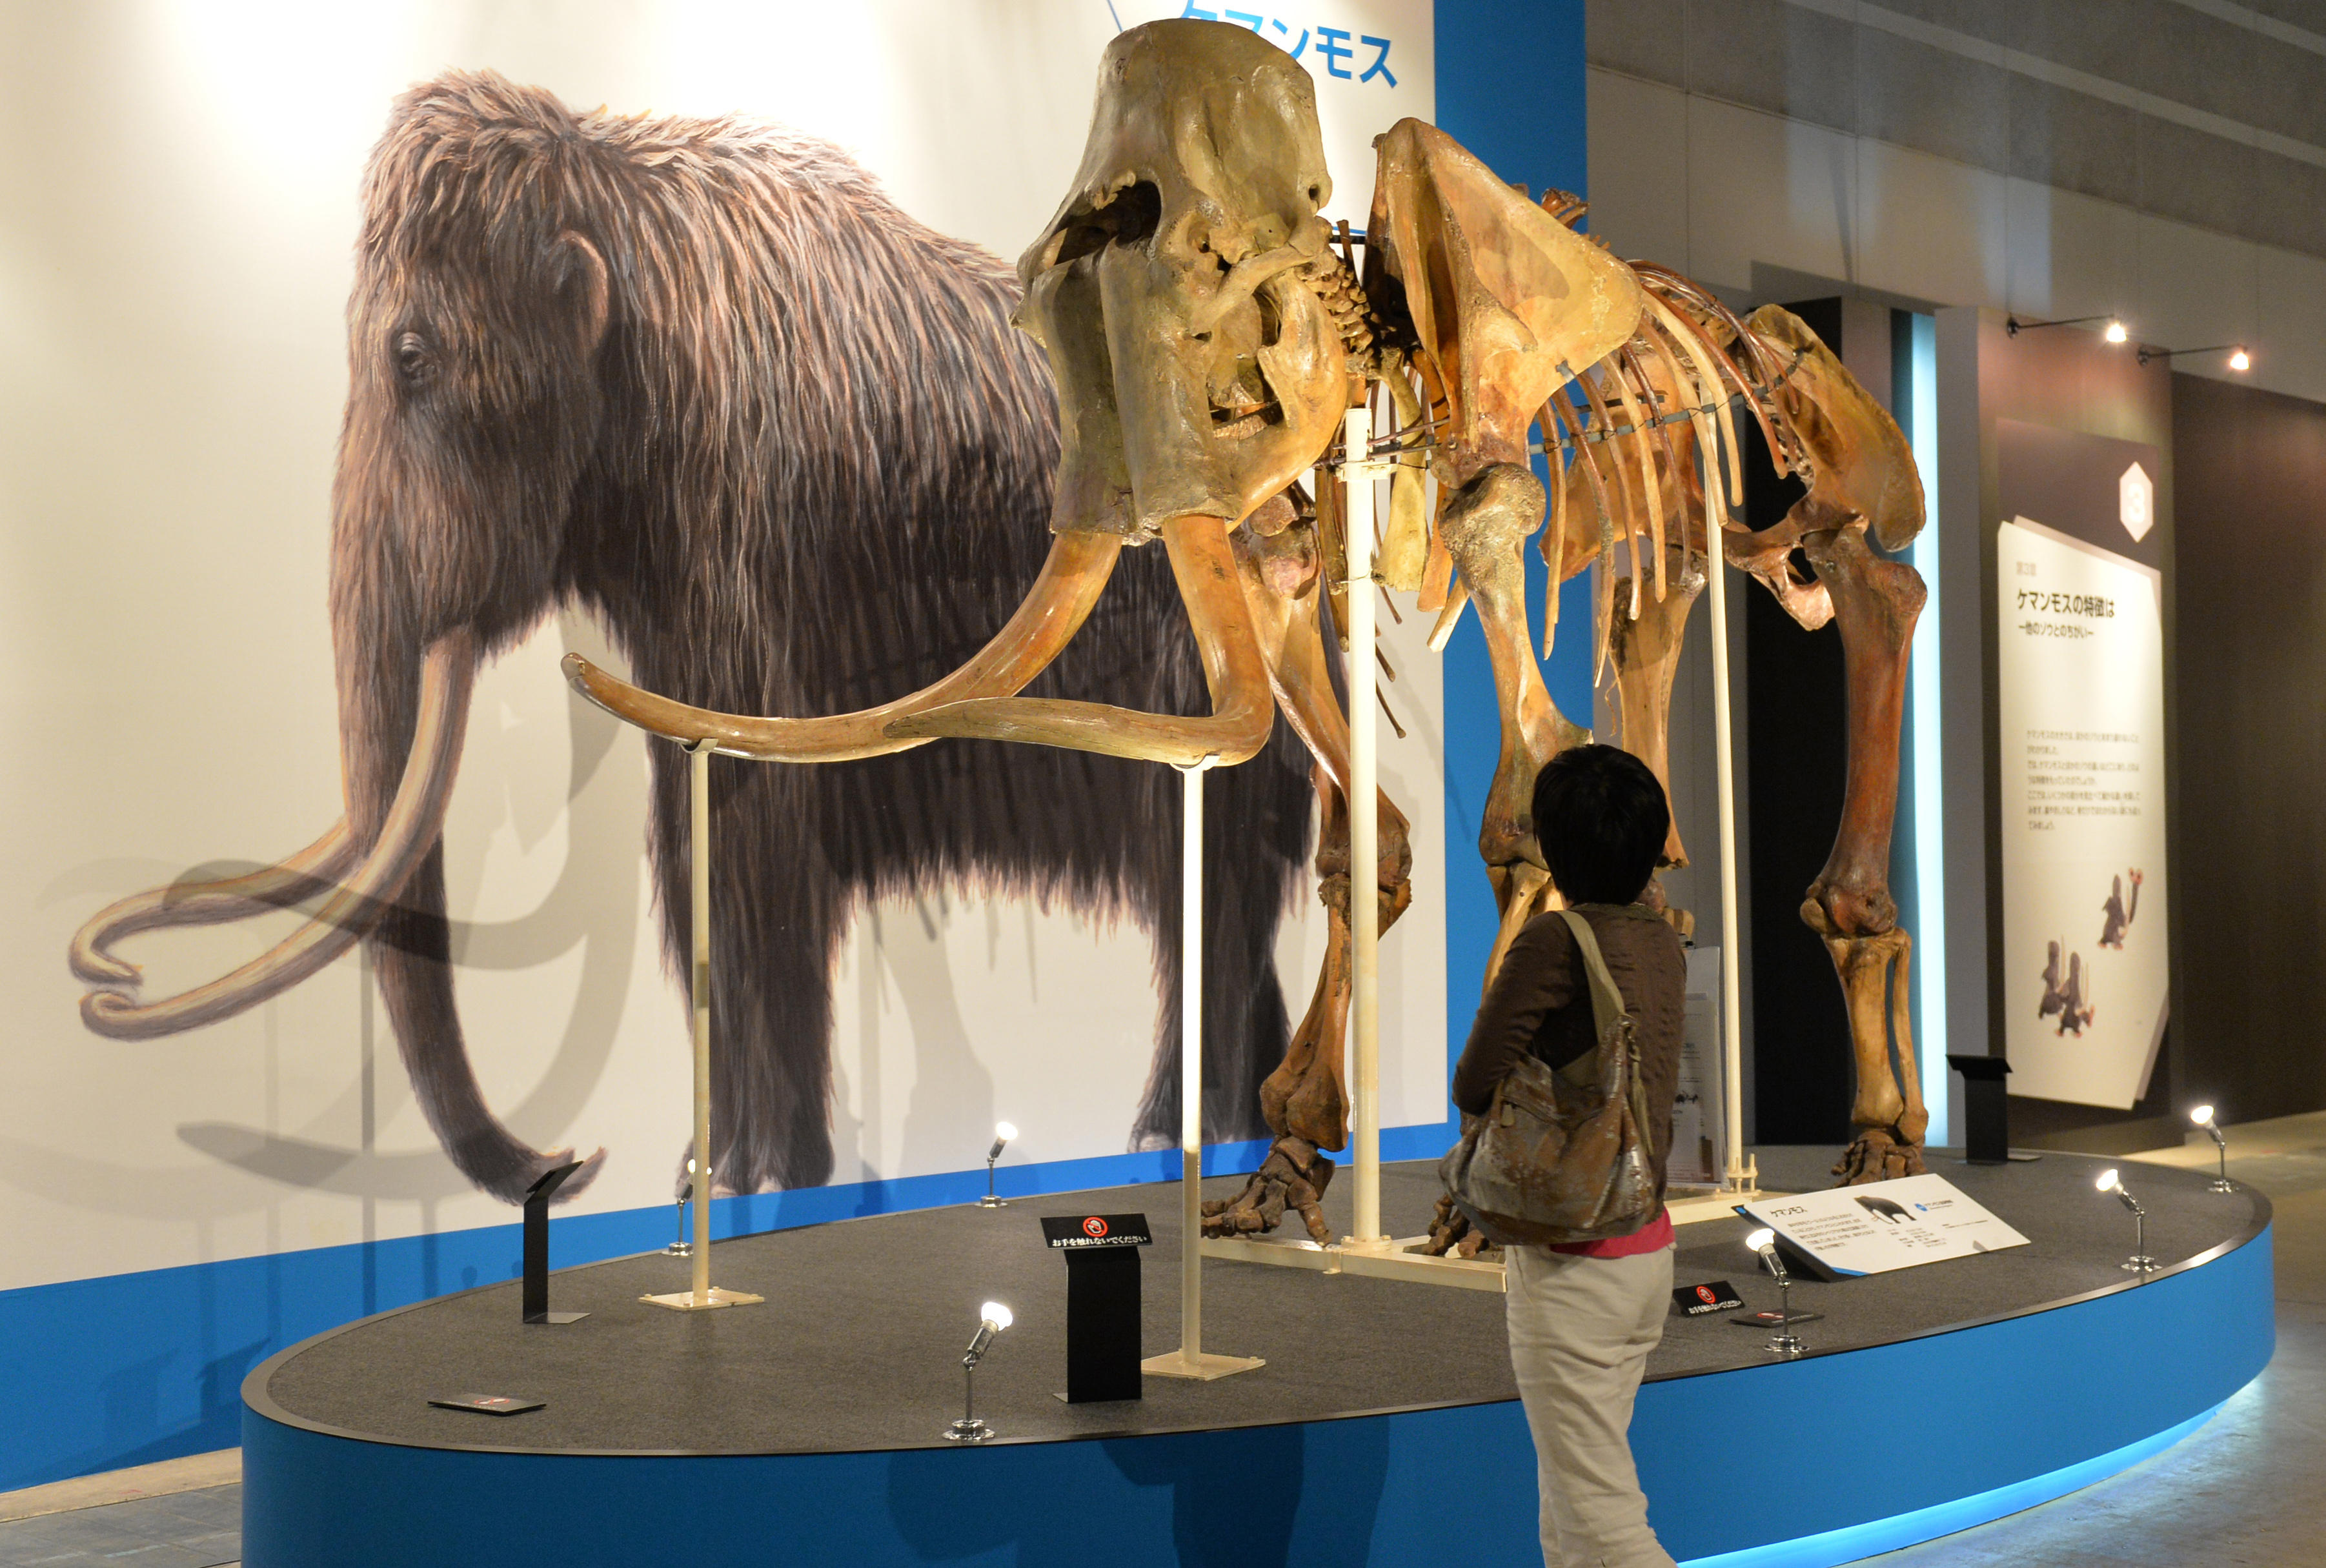 454d4c43e00 Harvard scientists aiming to bring back the woolly mammoth - CBS News